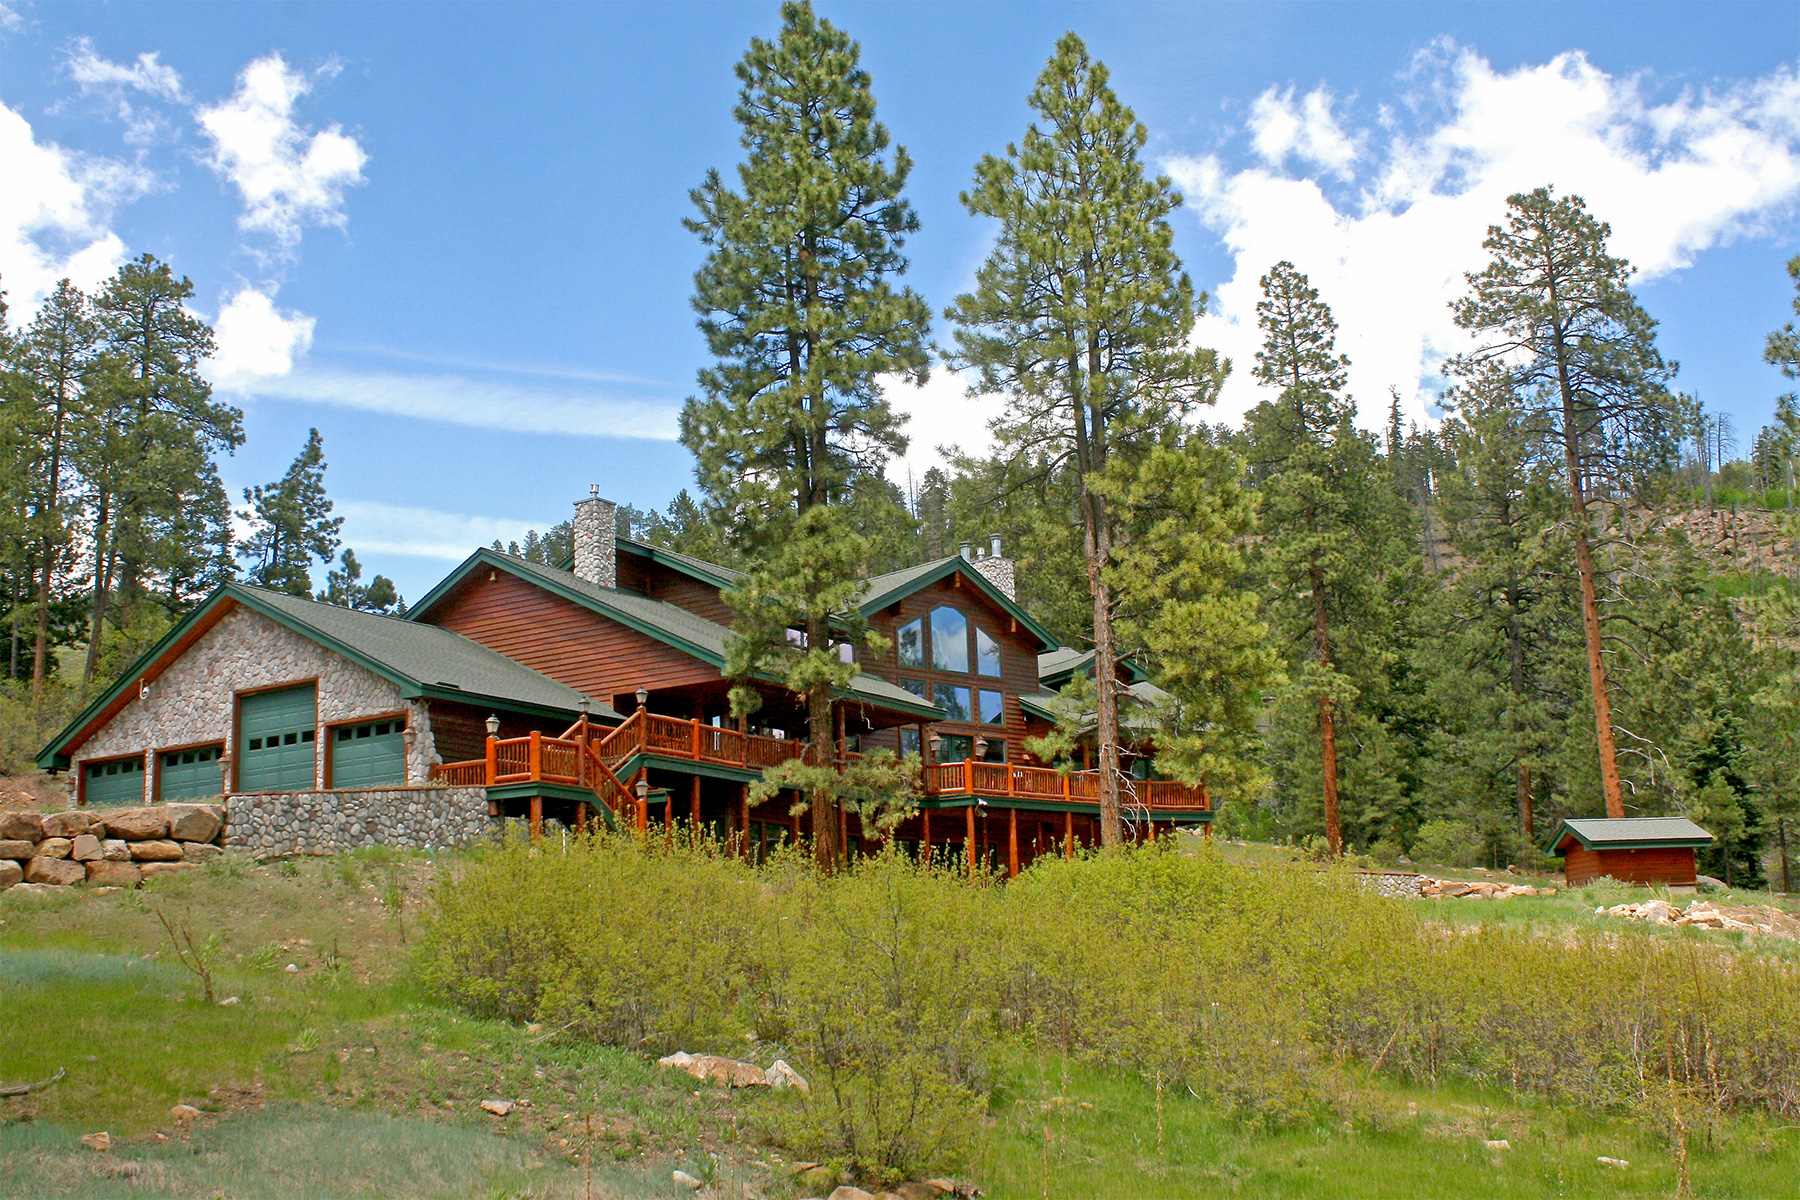 Casa Unifamiliar por un Venta en TC Ranch 780 Trew Creek Road Durango, Colorado 81301 Estados Unidos